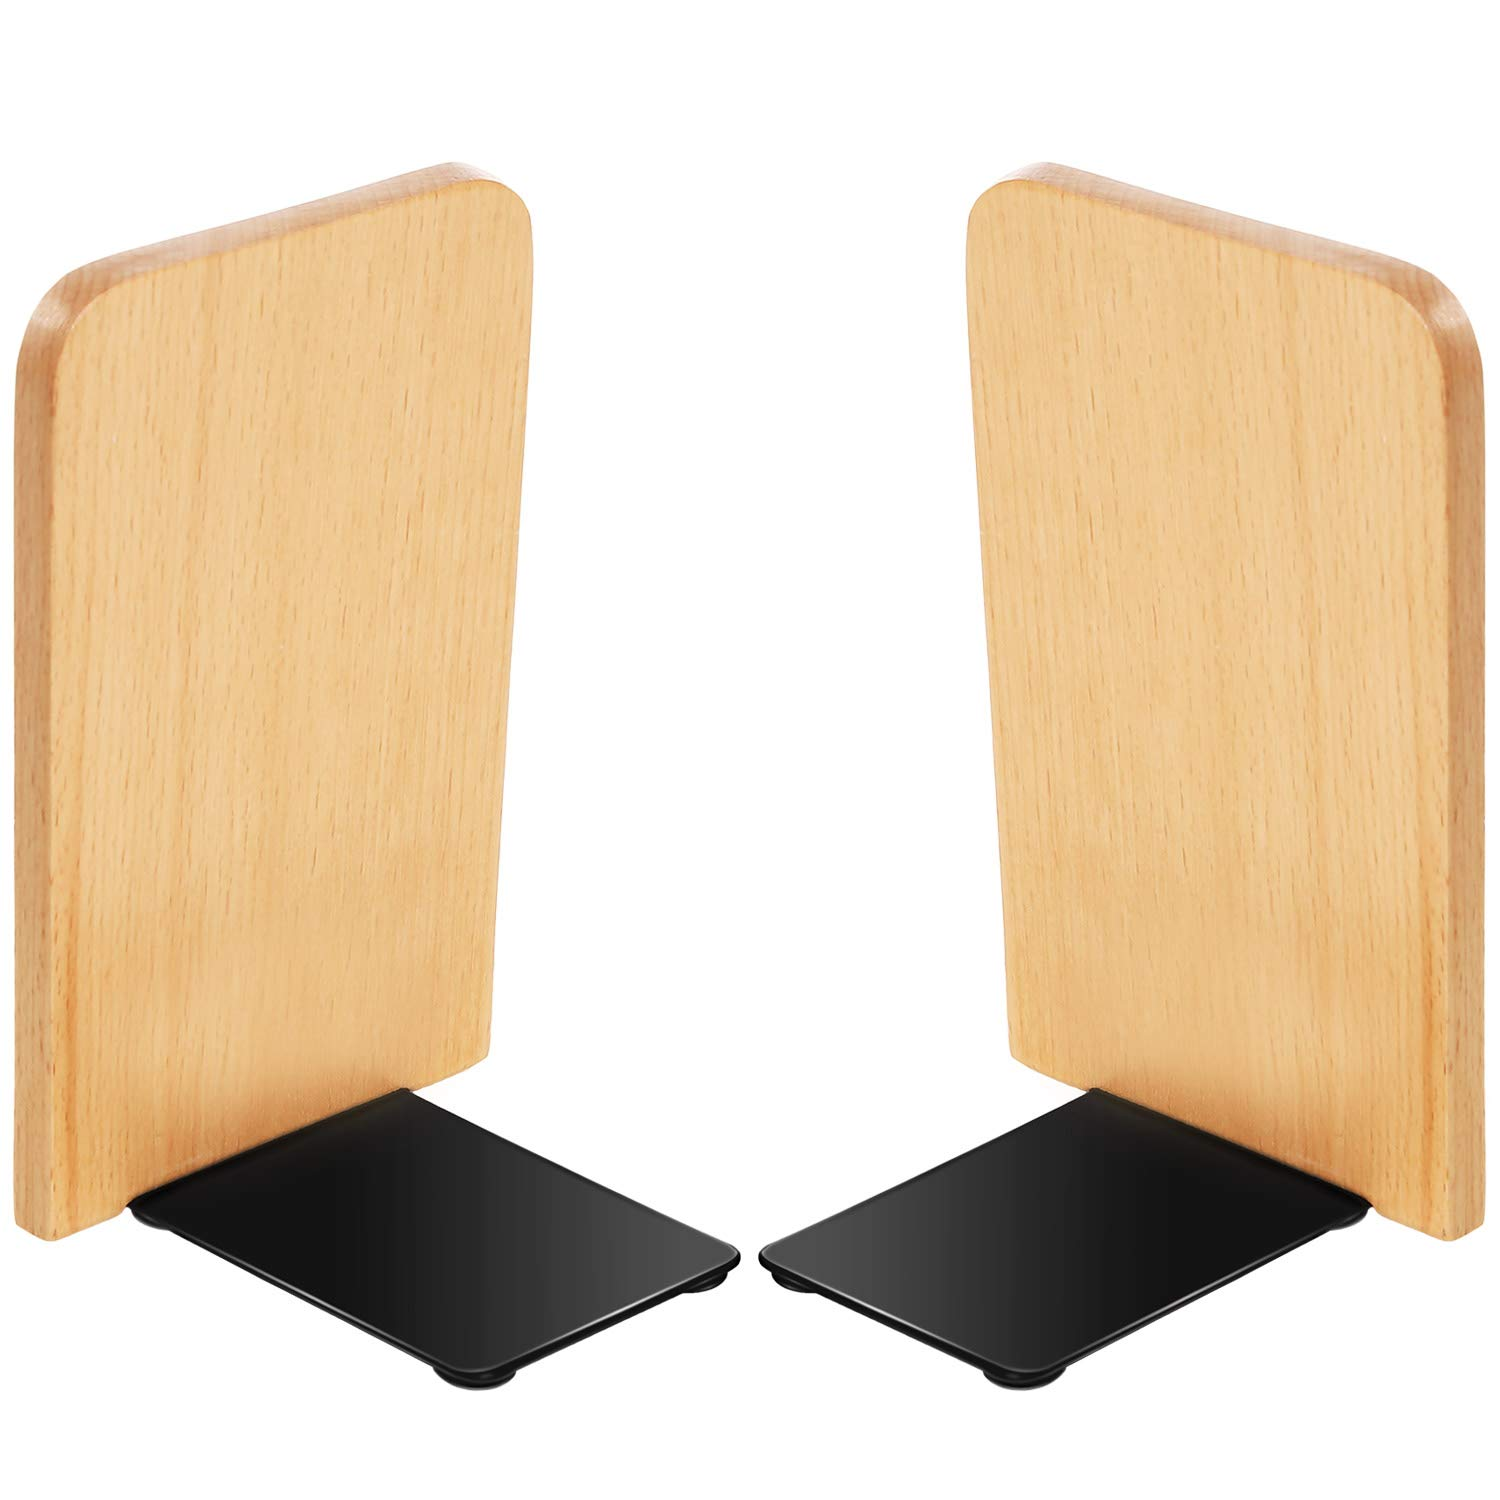 TecUnite Wood Bookends Beech Wood Art Bookends Office Hand Crafted Heavy Wooden Bookend for Book Stand (2) by TecUnite (Image #1)